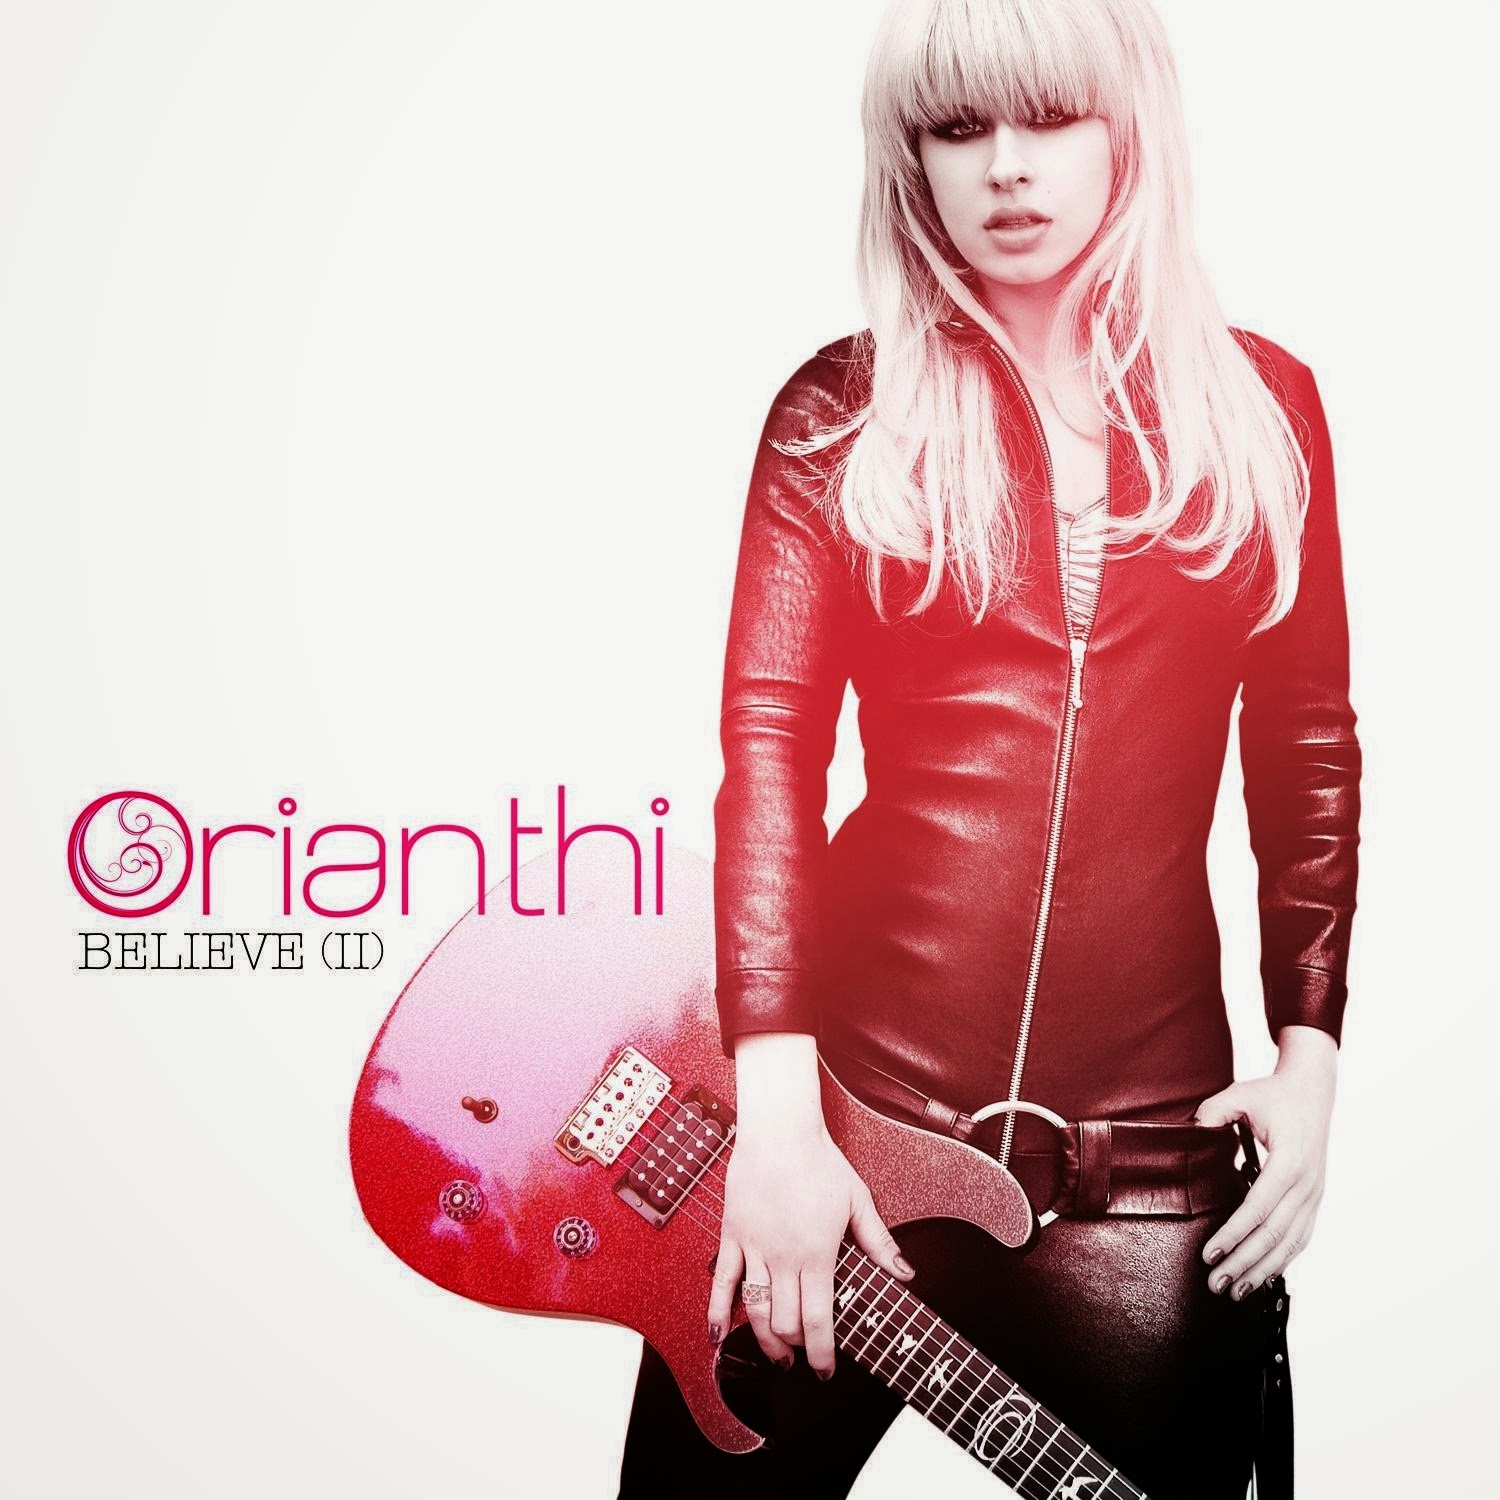 Orianthi – Believe (Bonus Track Version) (2011)